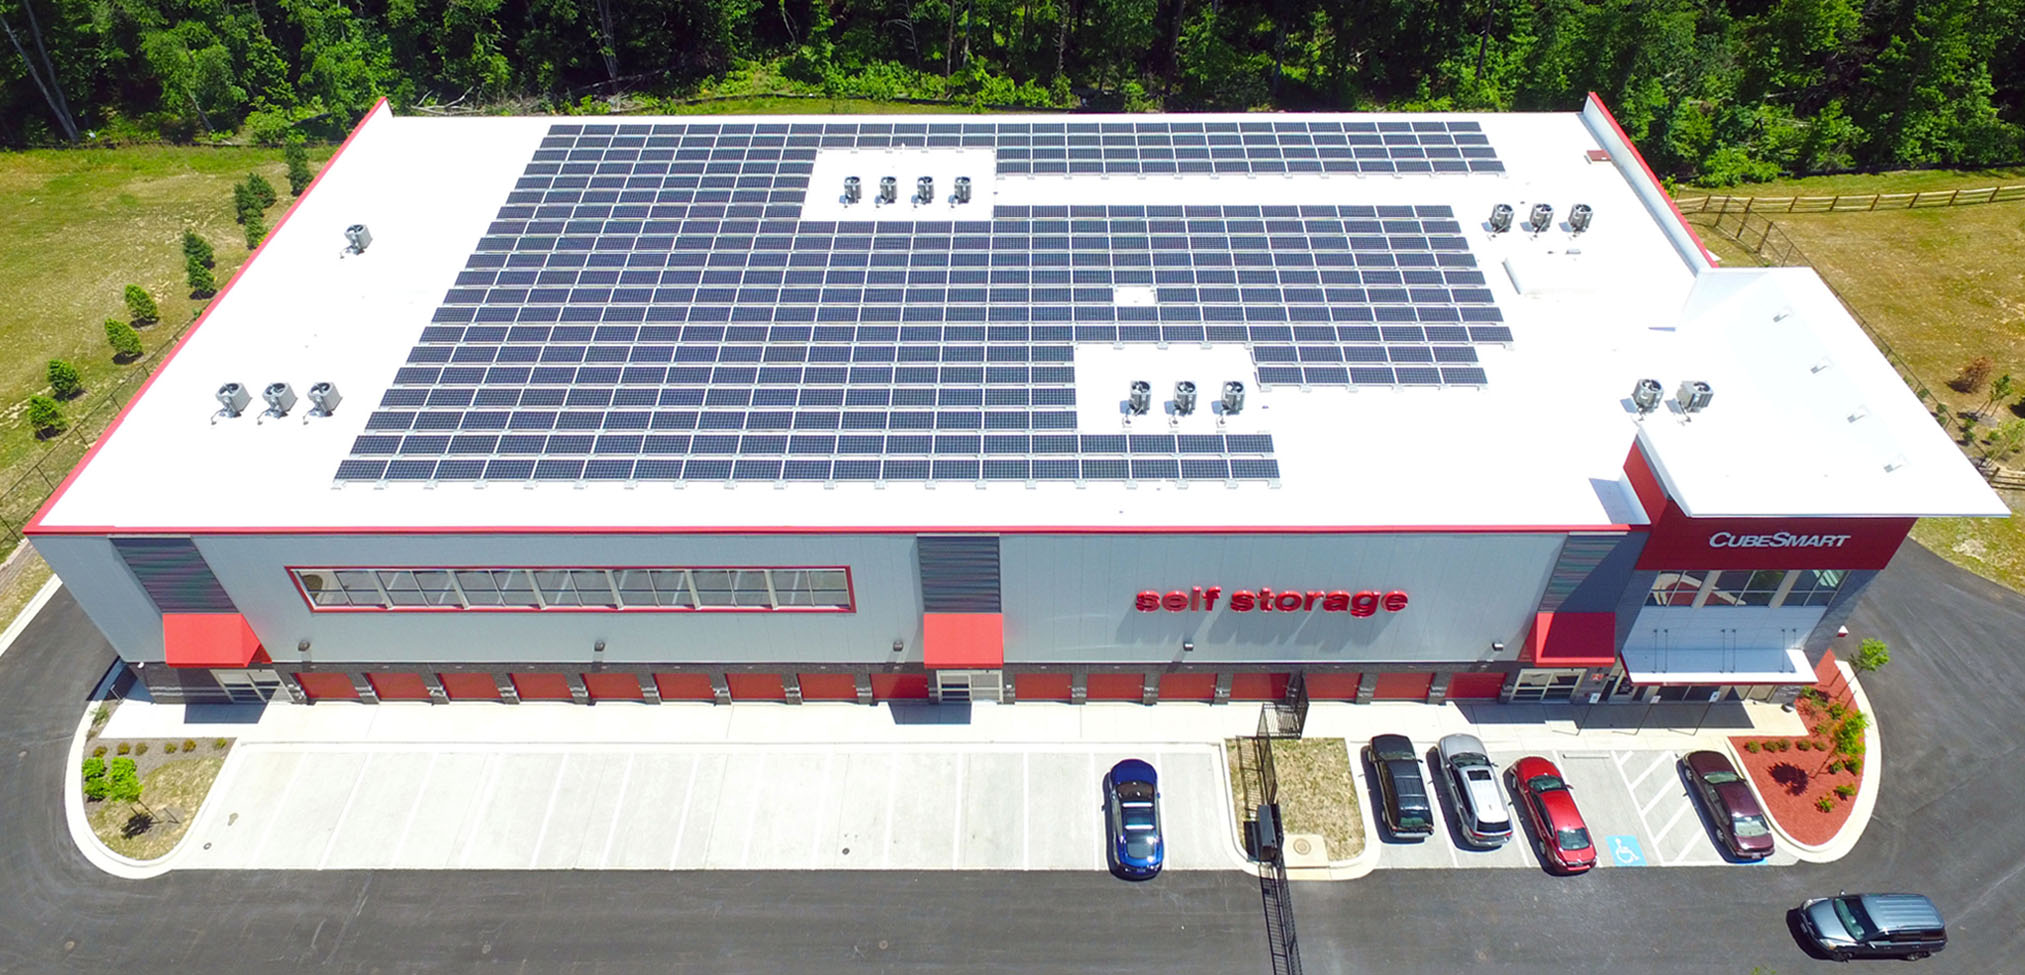 Arcland's first rooftop solar array